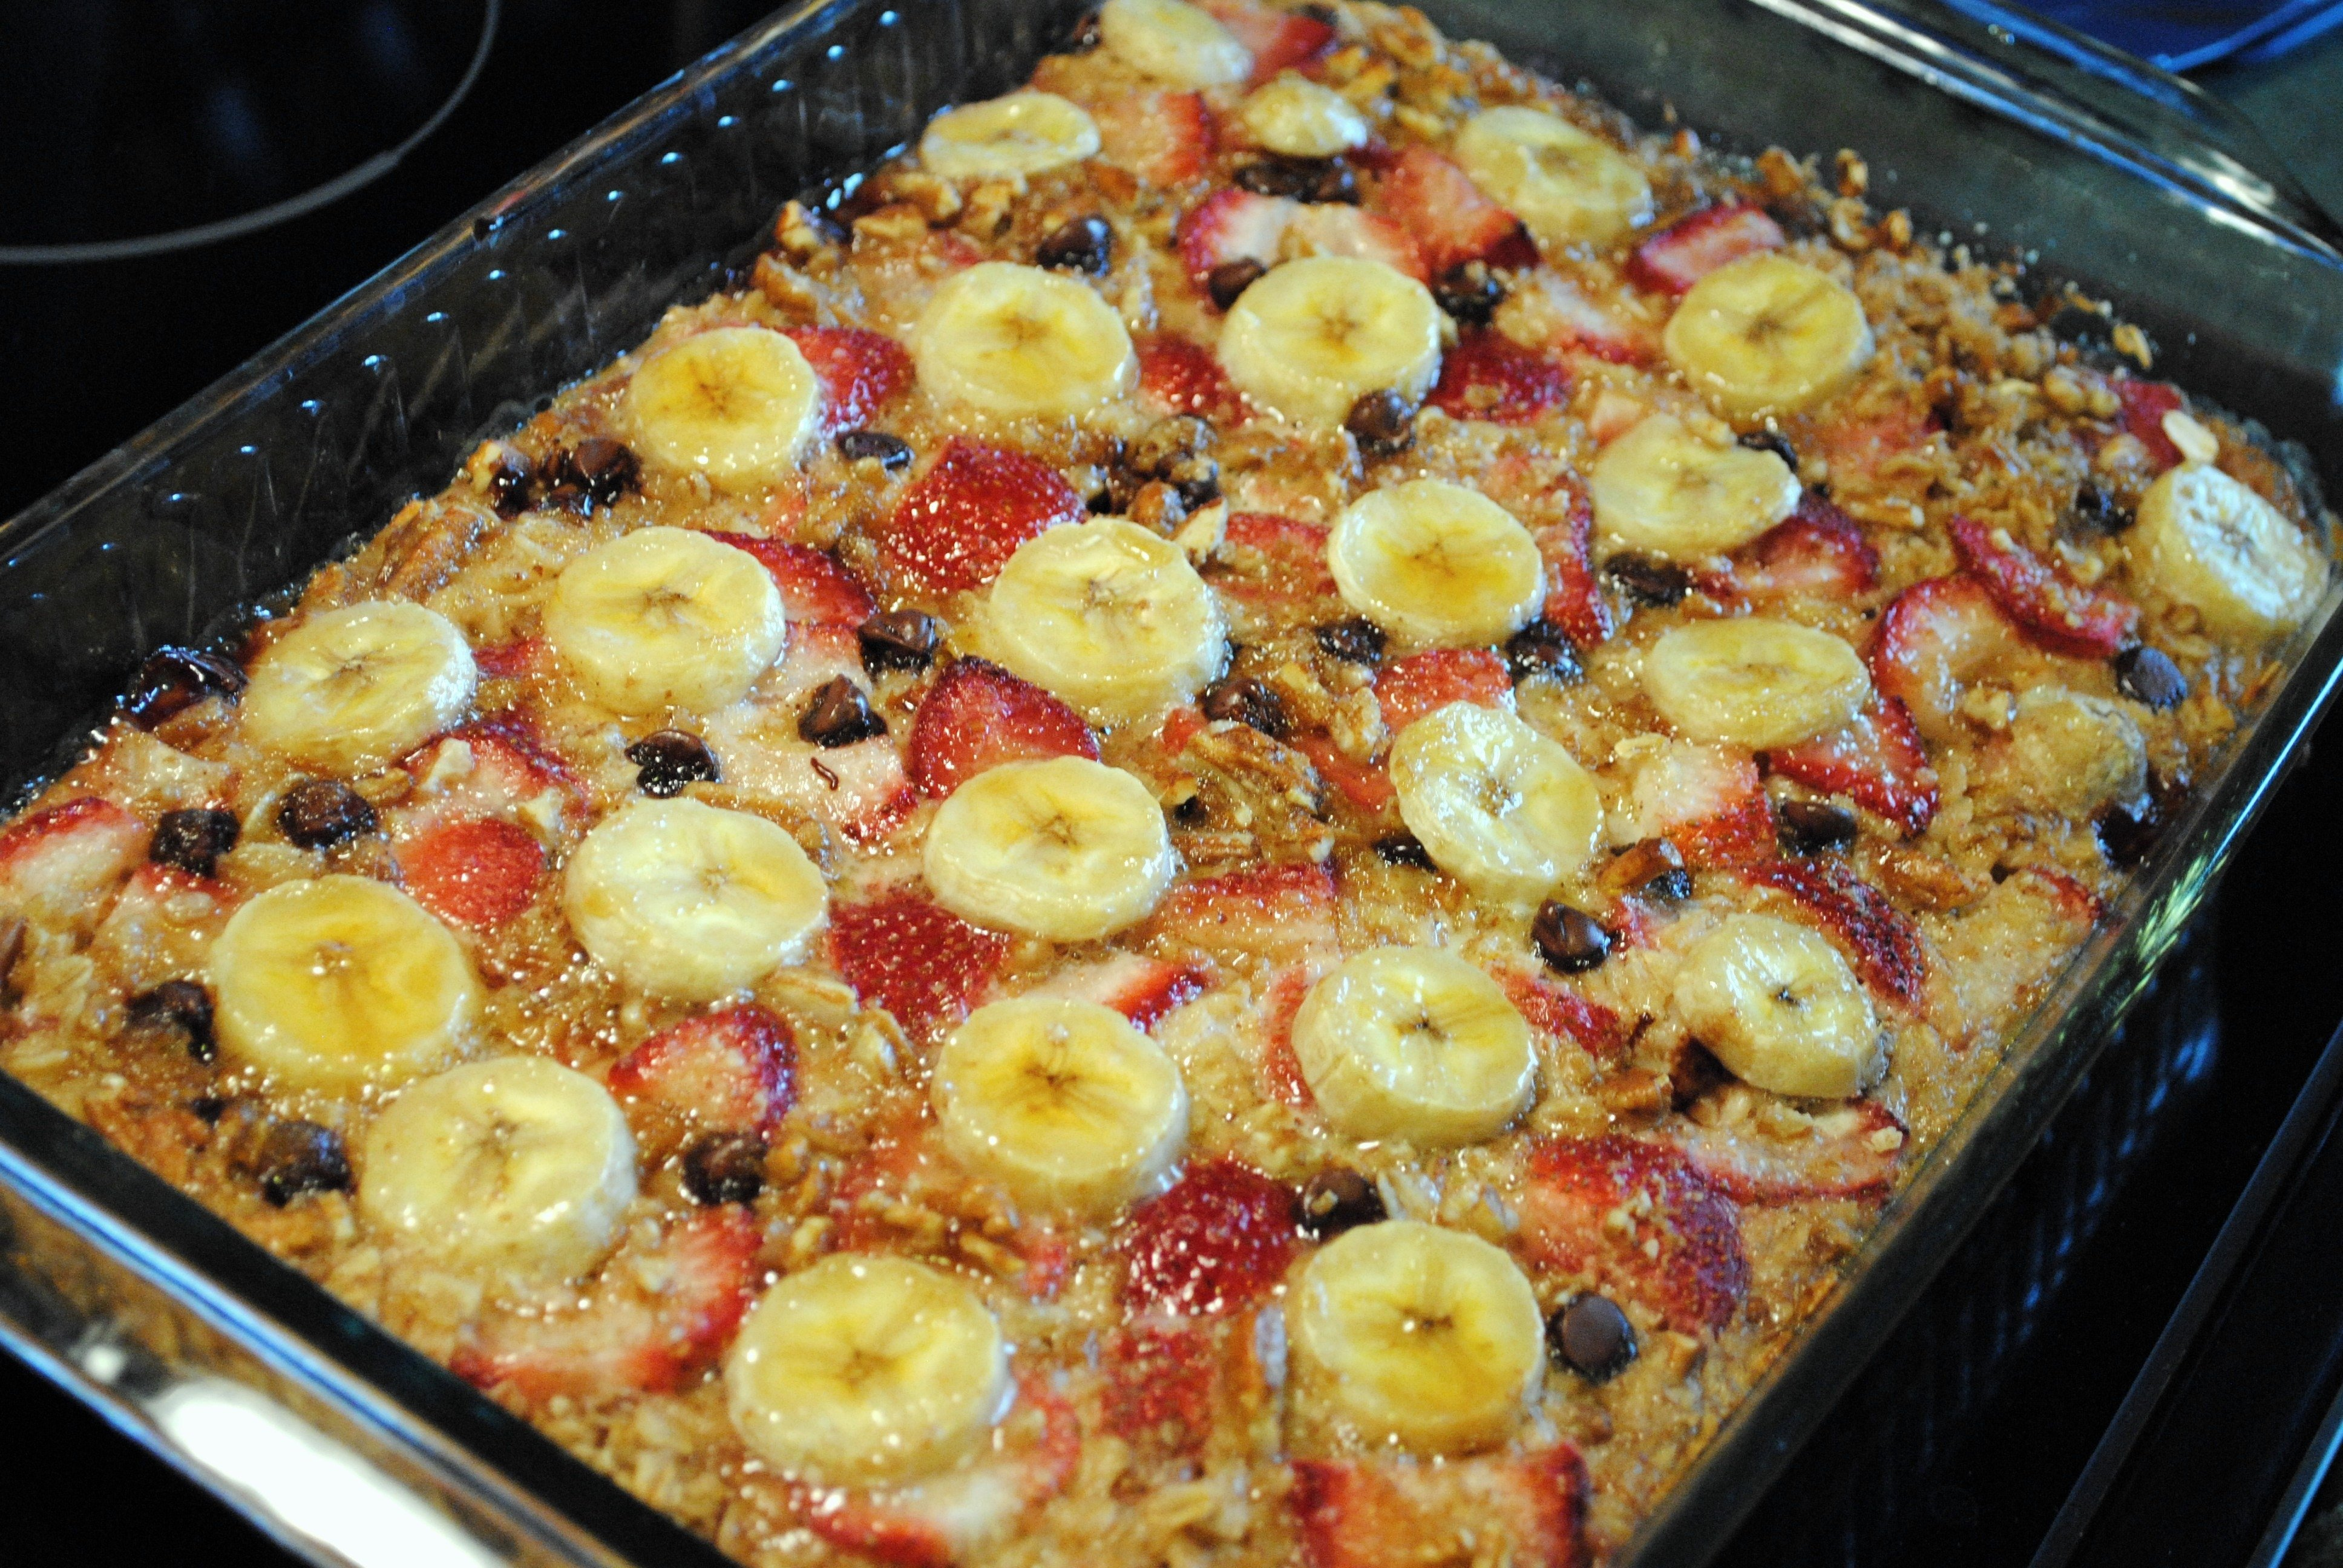 10 Best Cooking For A Crowd Ideas baked oatmeal with strawberries bananas and chocolate 2020